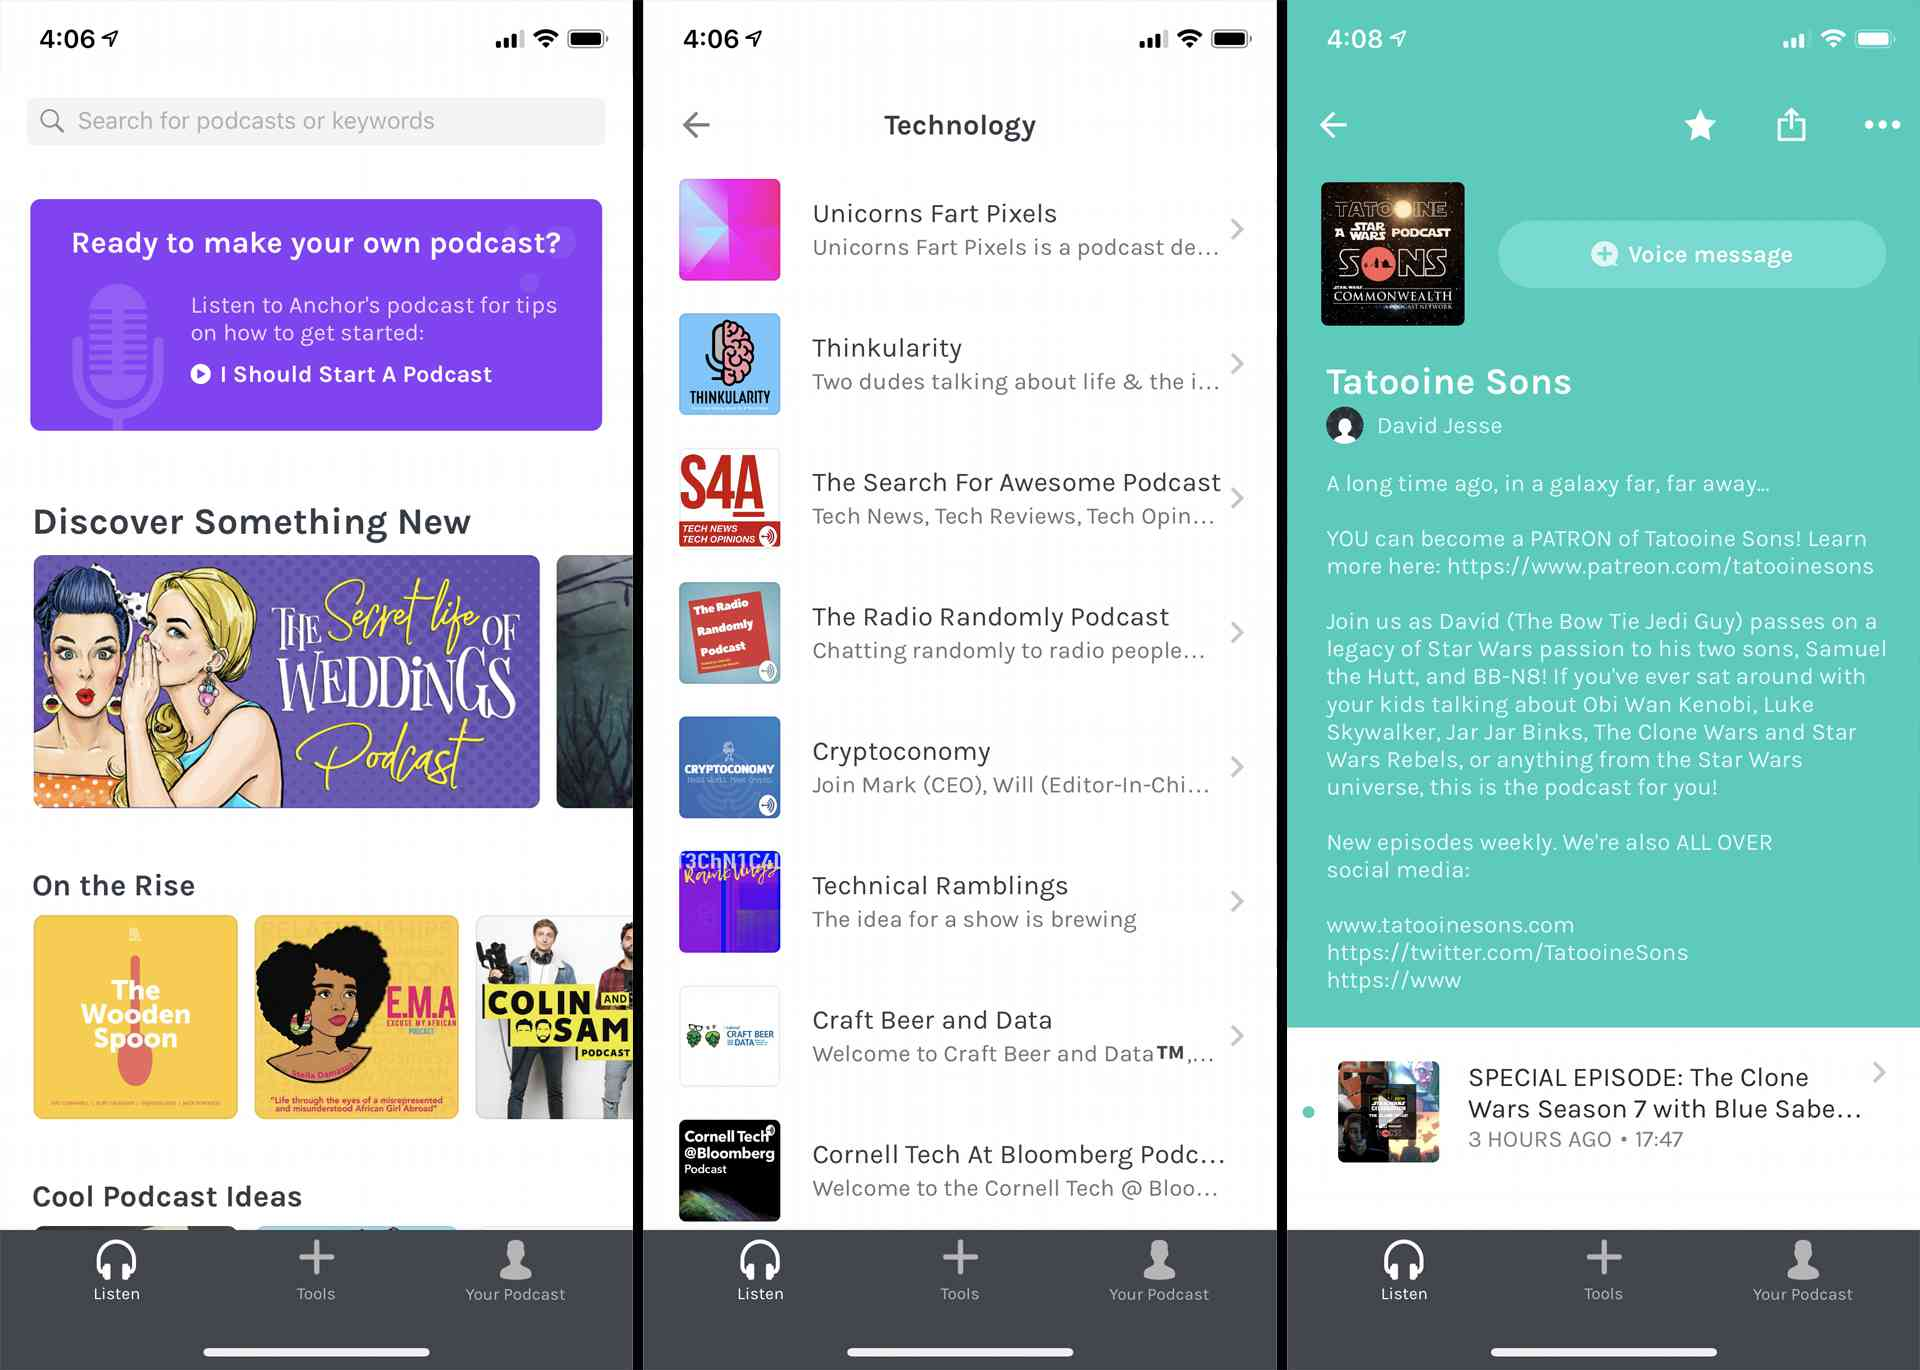 Podcast listing within the Anchor FM iOS app.